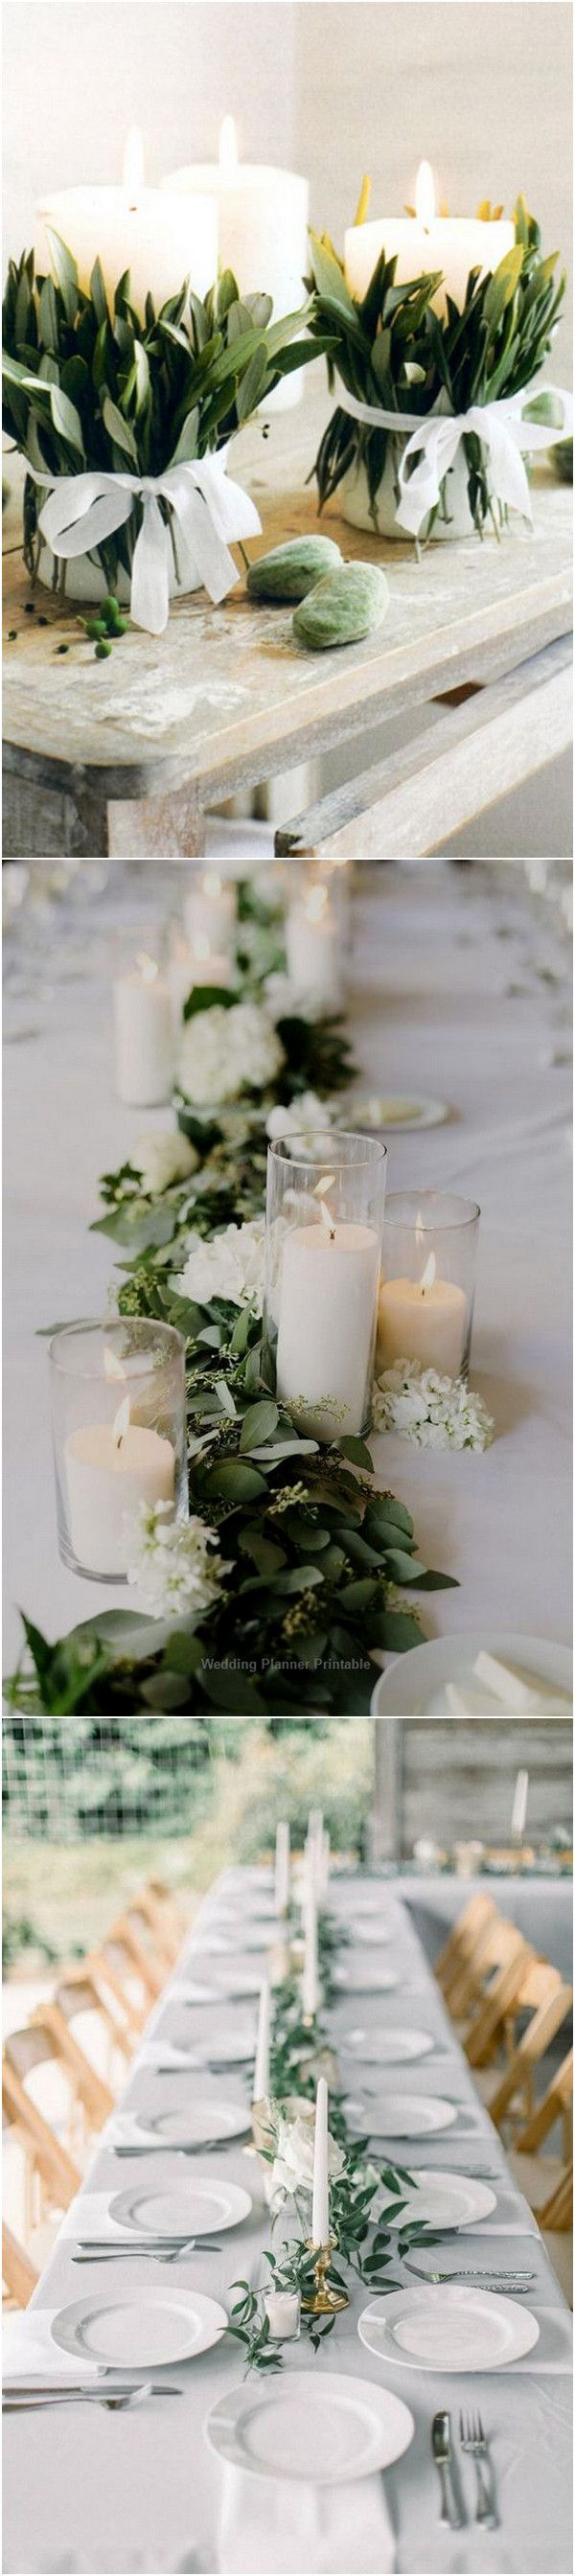 12 Simple White and Green Wedding Centerpieces on A Budget ...